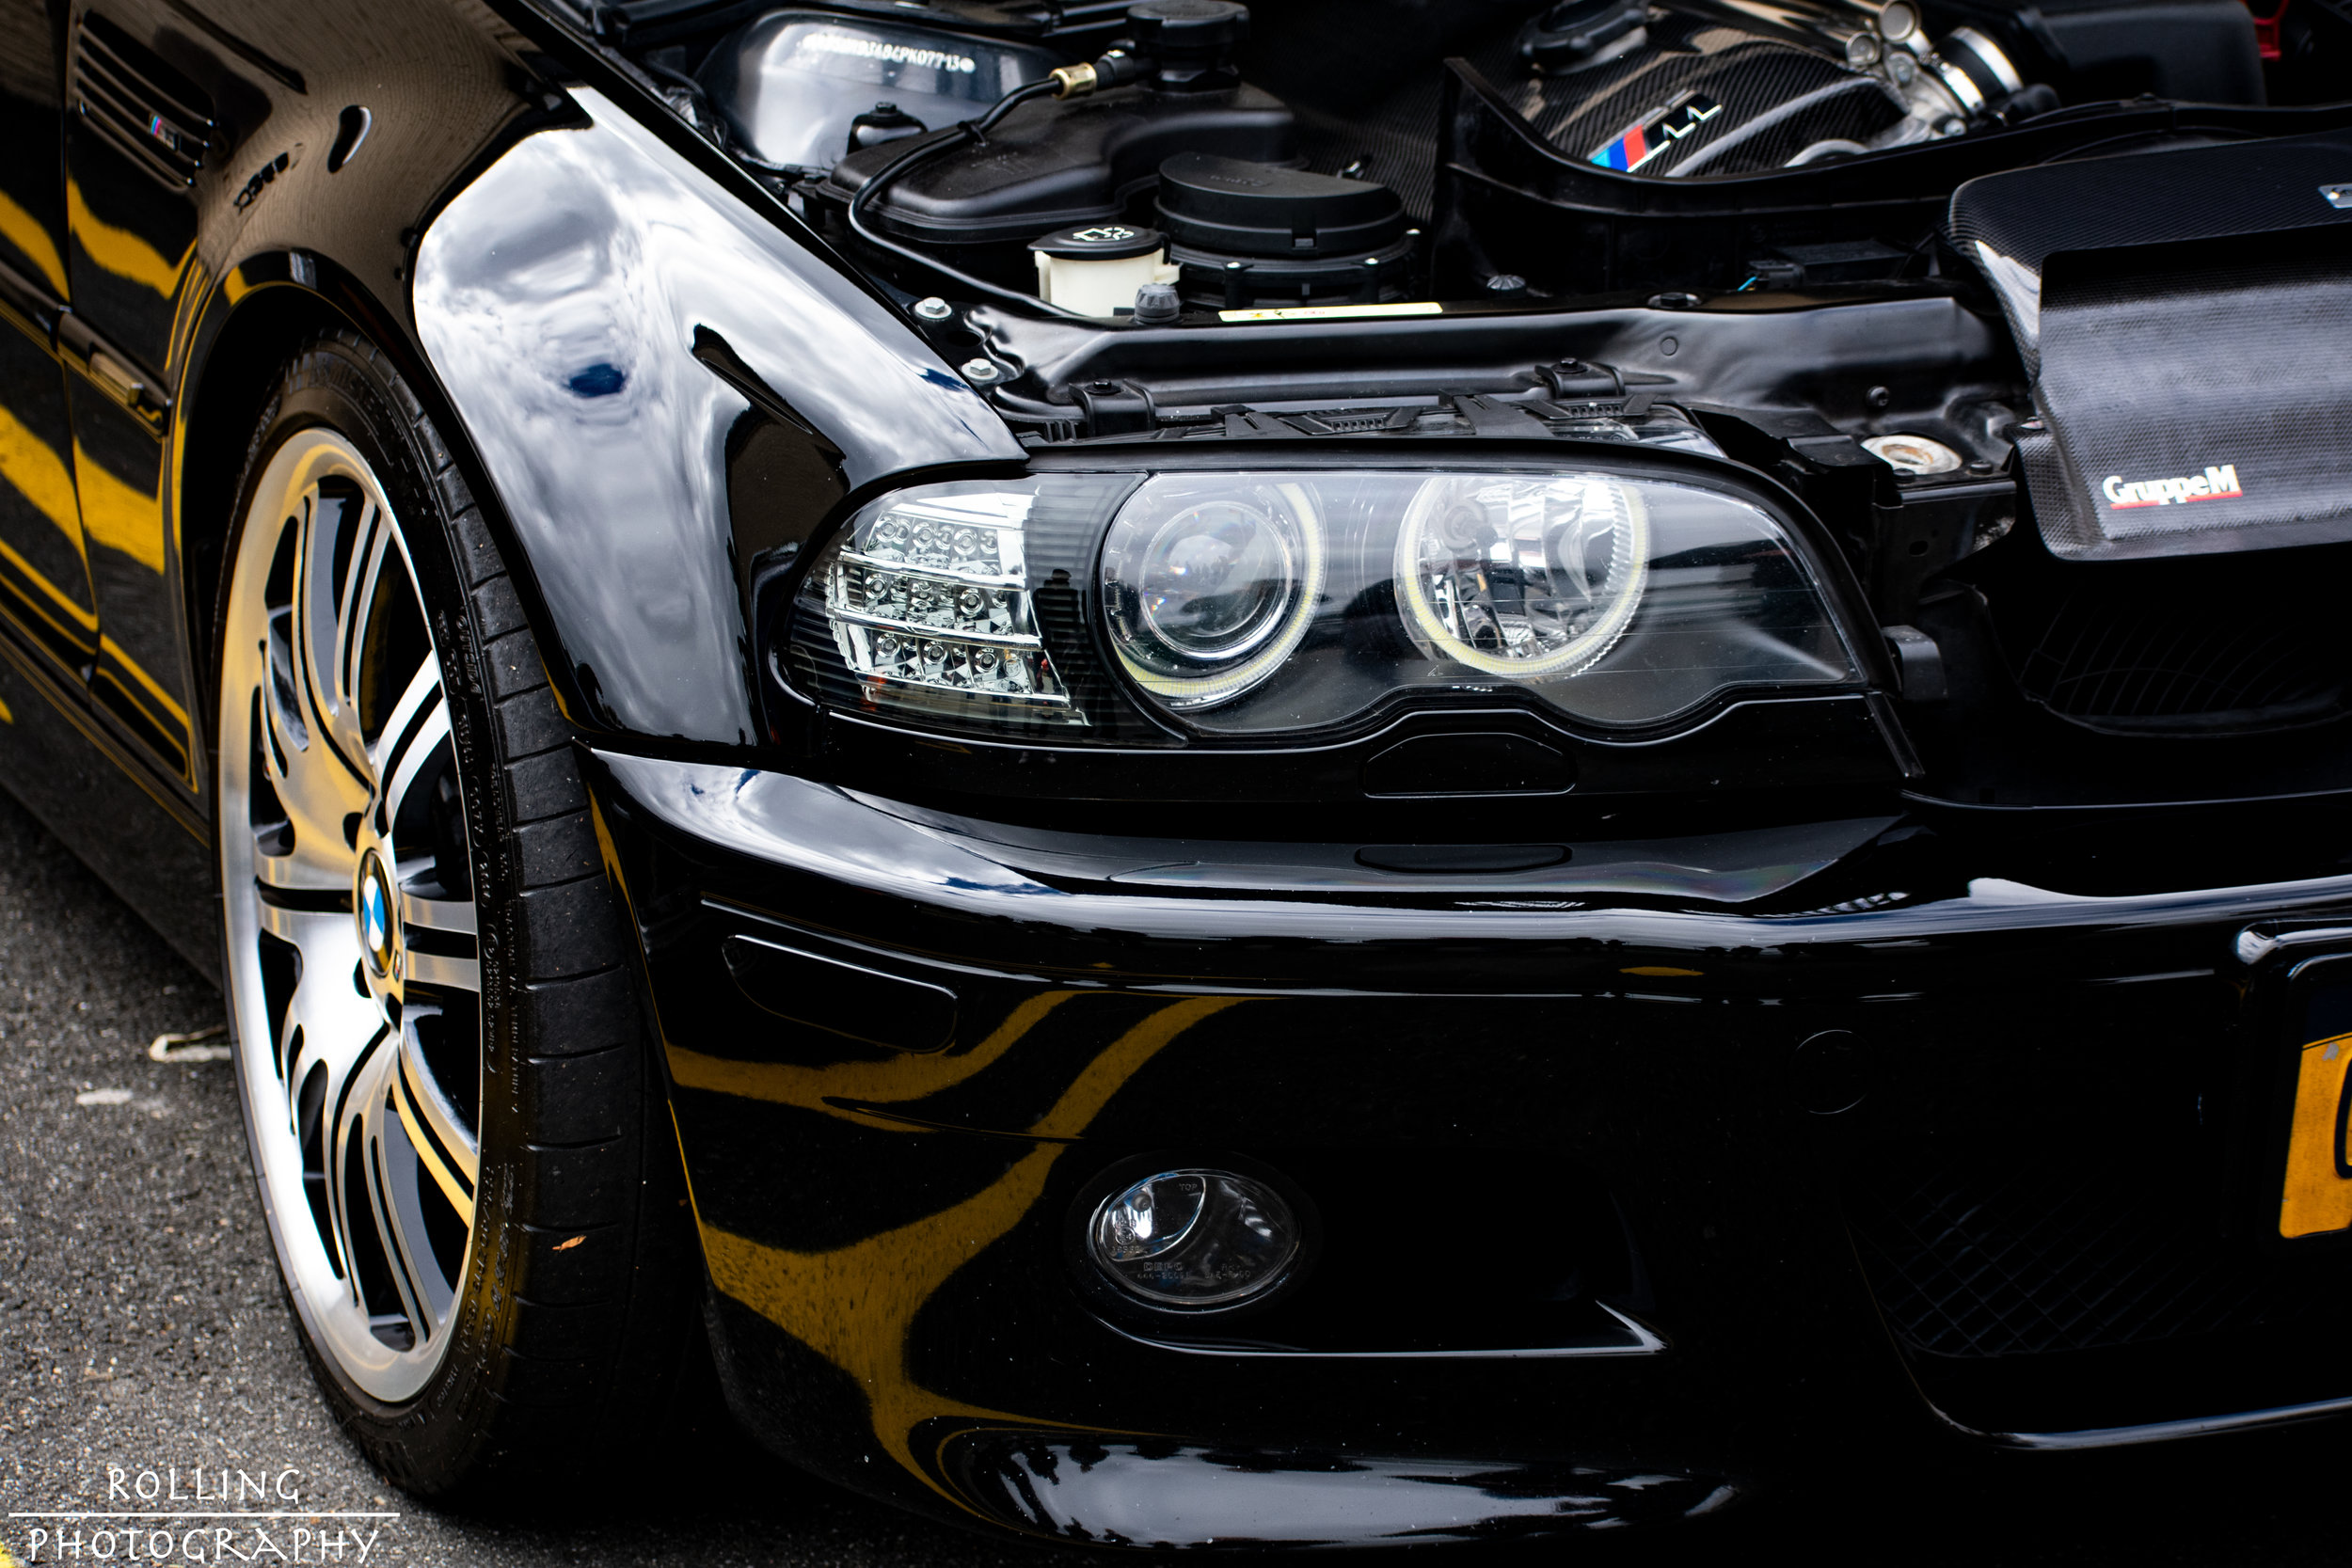 M3 Black Shadow Front Angle.jpg